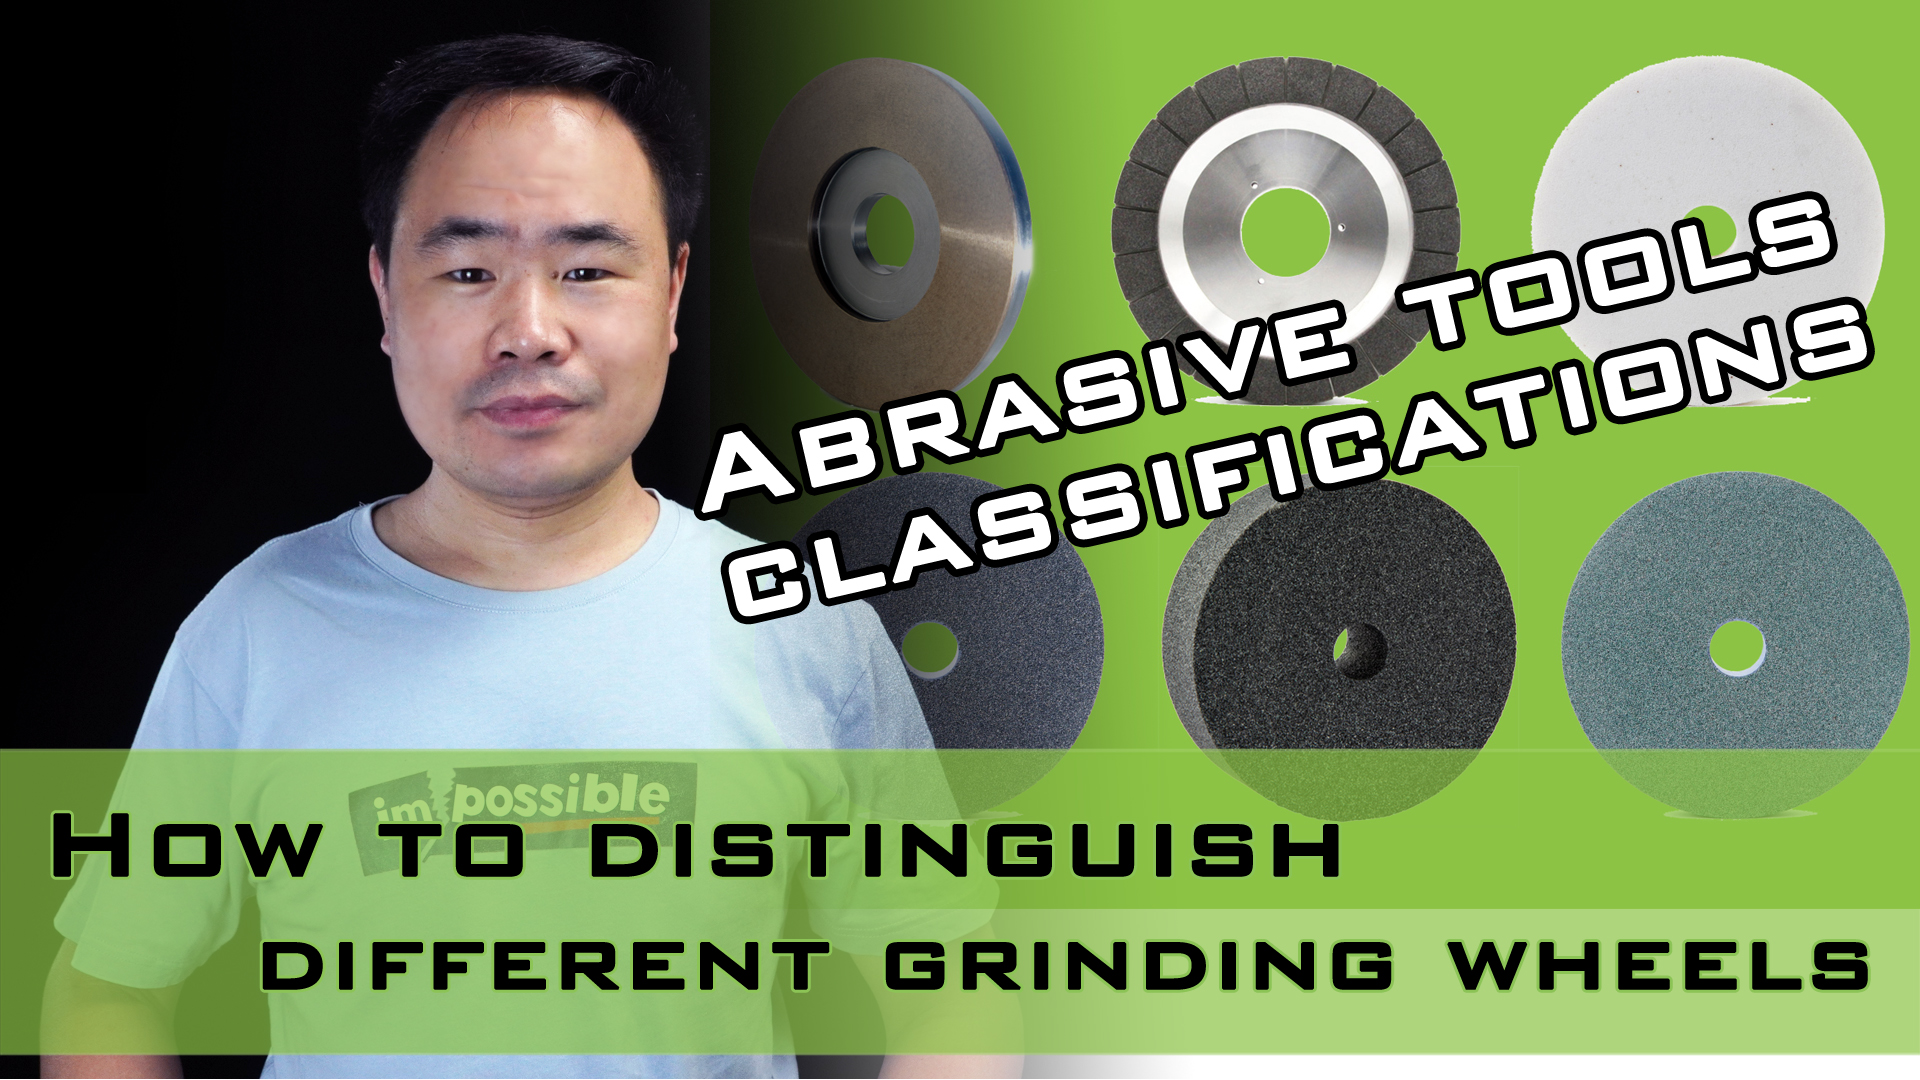 How to judge a grinding wheel by its appearance